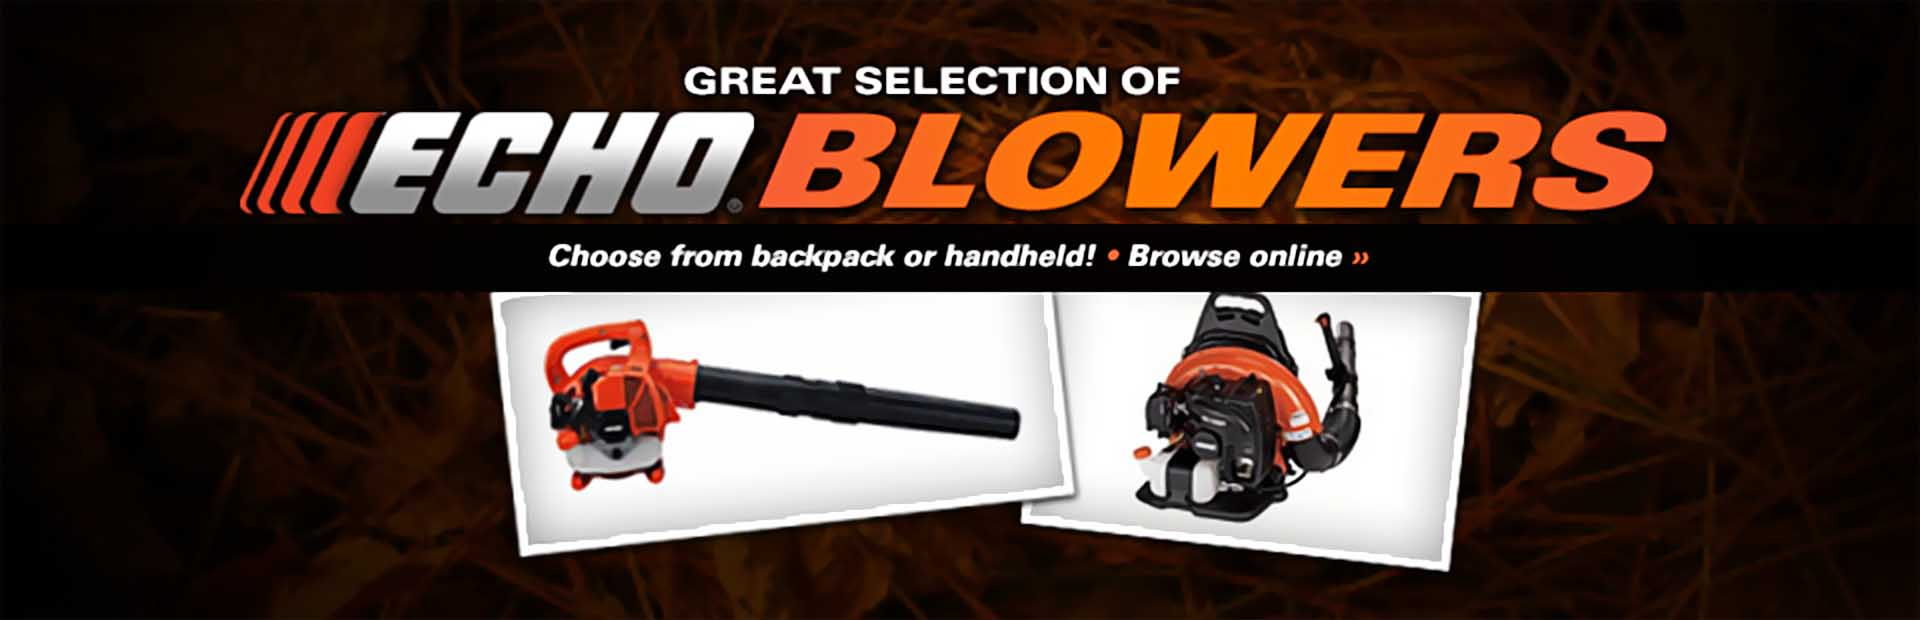 Click here to view our great selection of ECHO blowers.